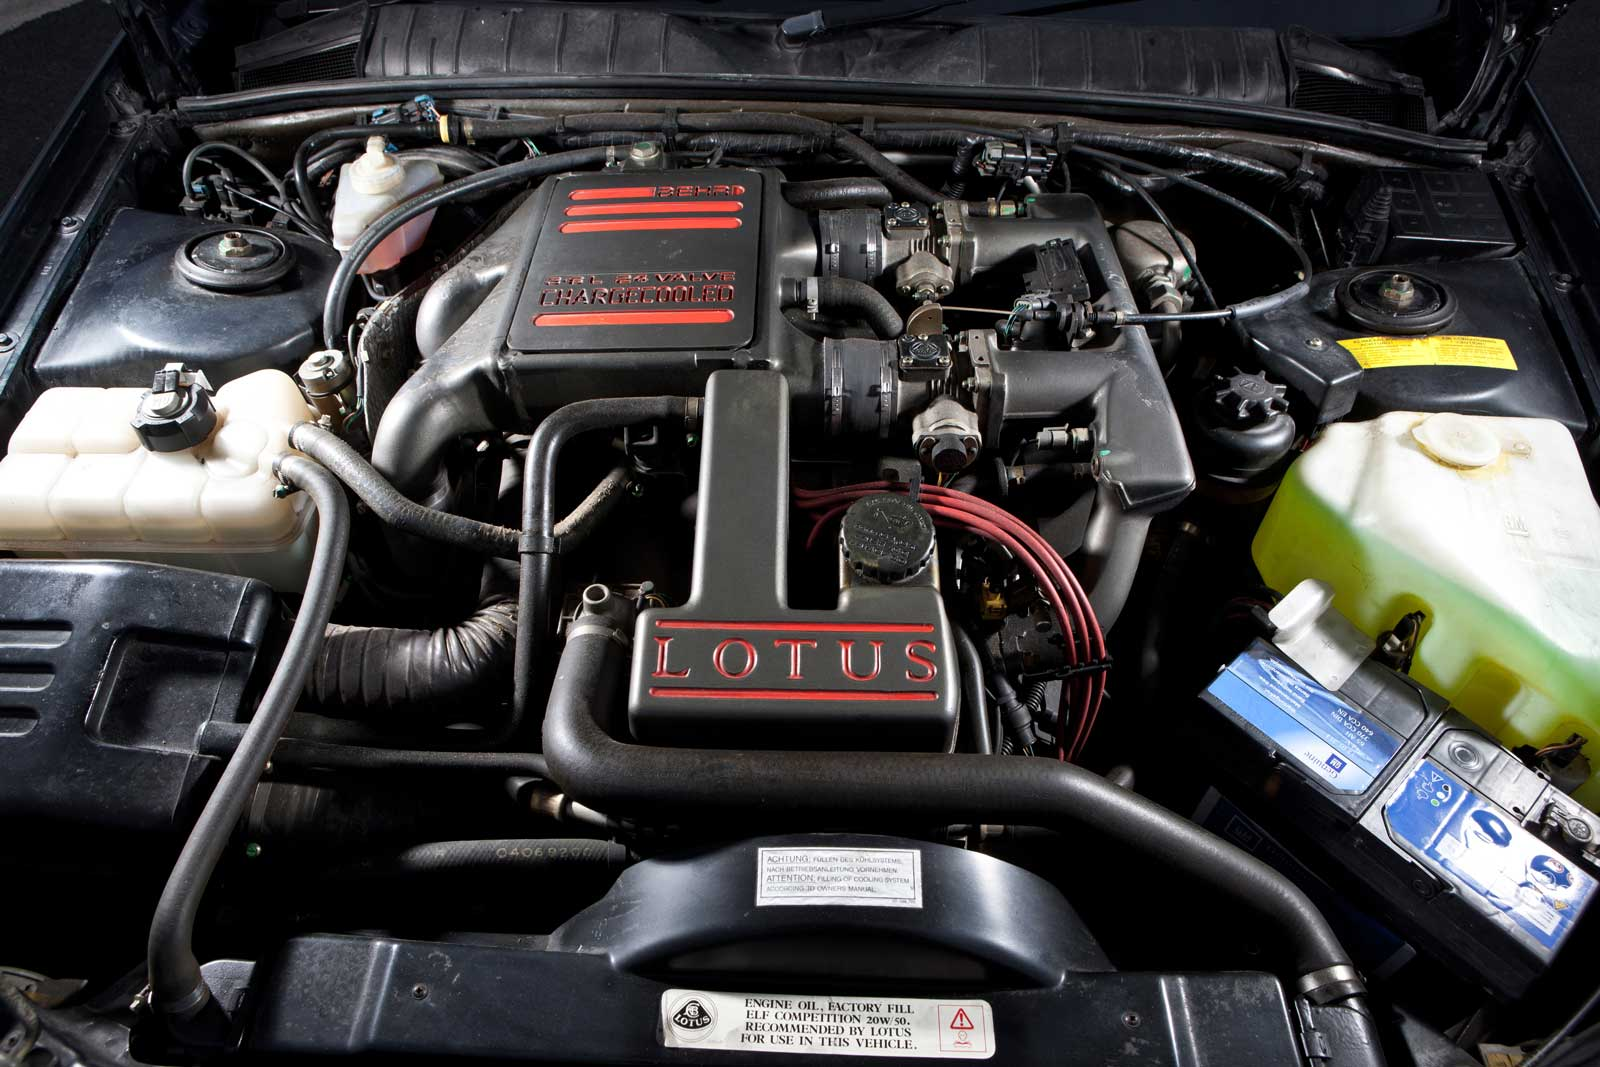 Lotus Omega/Carlton Engine